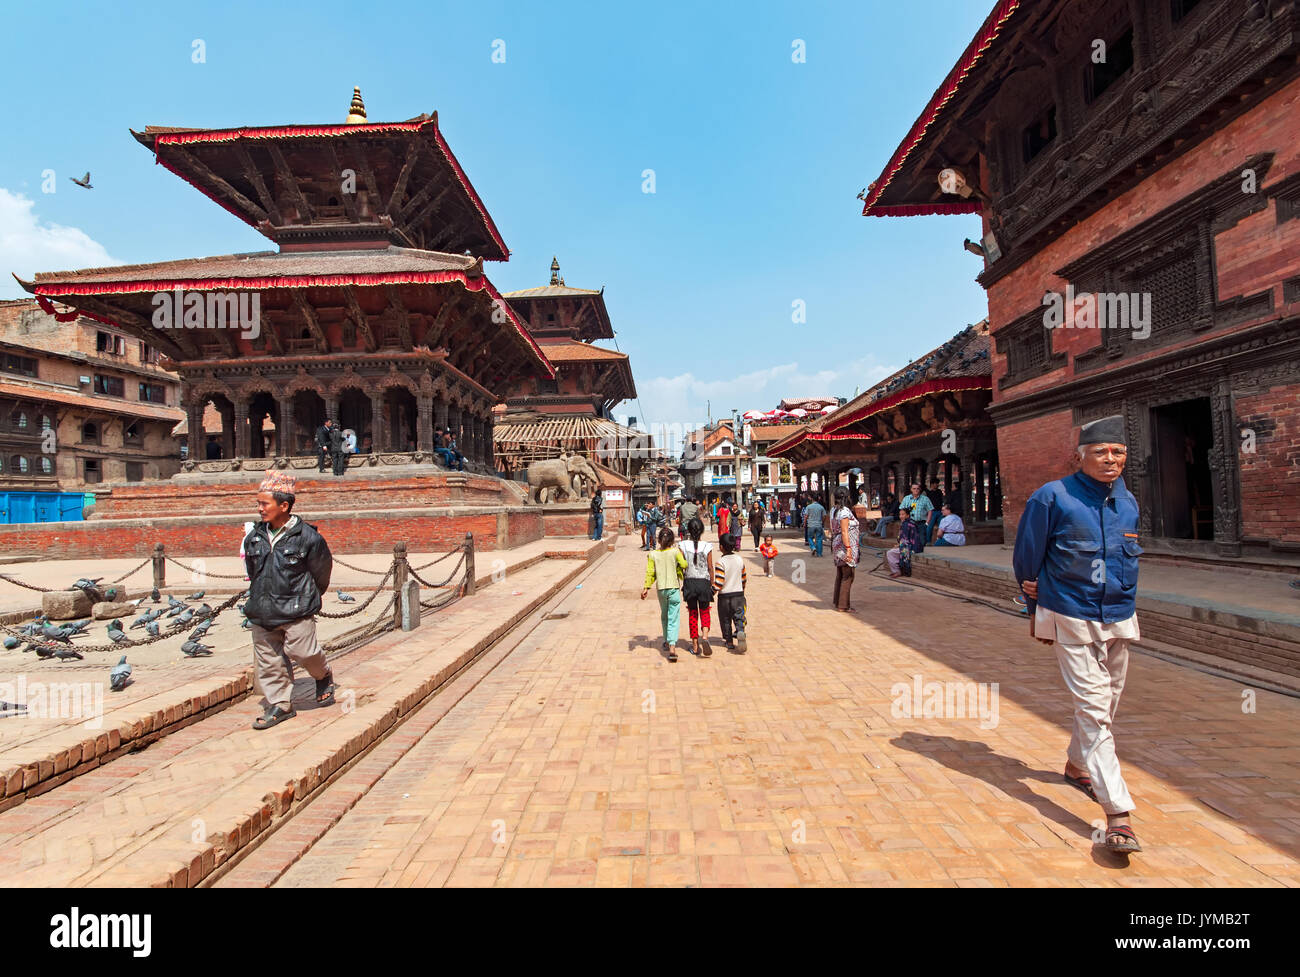 Kathmandu, Nepal - March 09, 2013: People walking at Kathmandu Durbar Square. Durbar Square is the generic name used to describe plazas and areas oppo - Stock Image